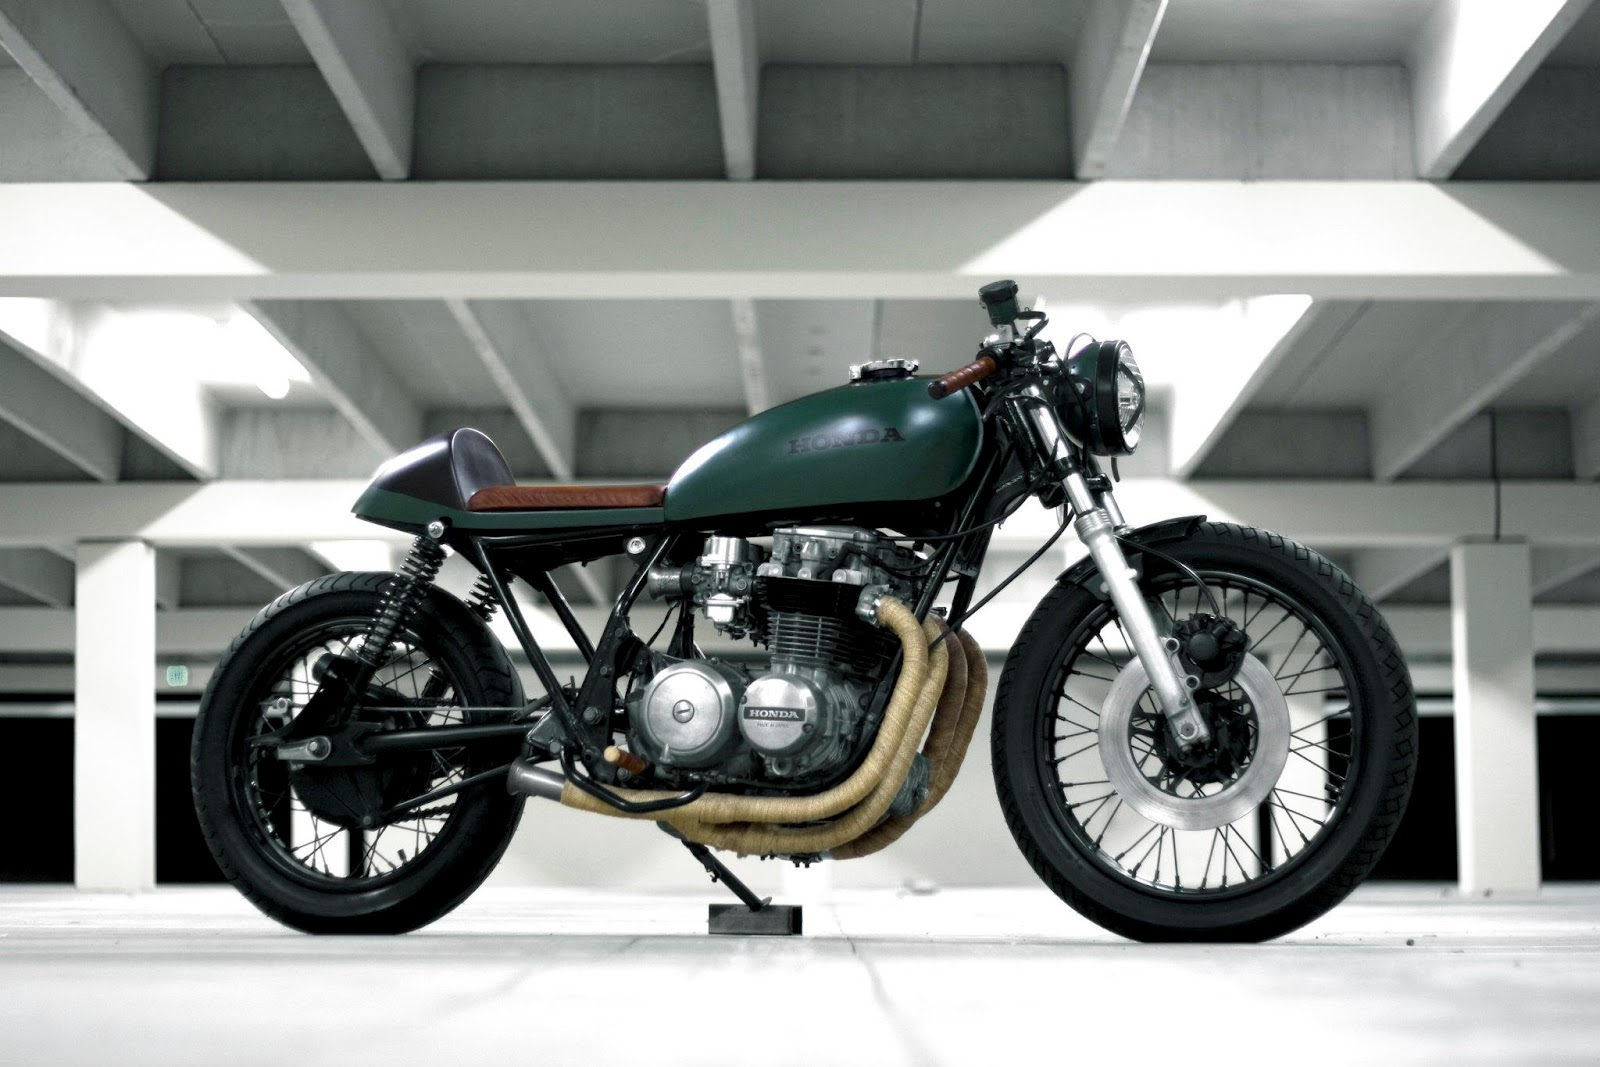 medium resolution of  decided he d rather move saw introduction sc style remained an optionthrough rest run cb650 honda cb650 service repair workshop manual 1980 onward